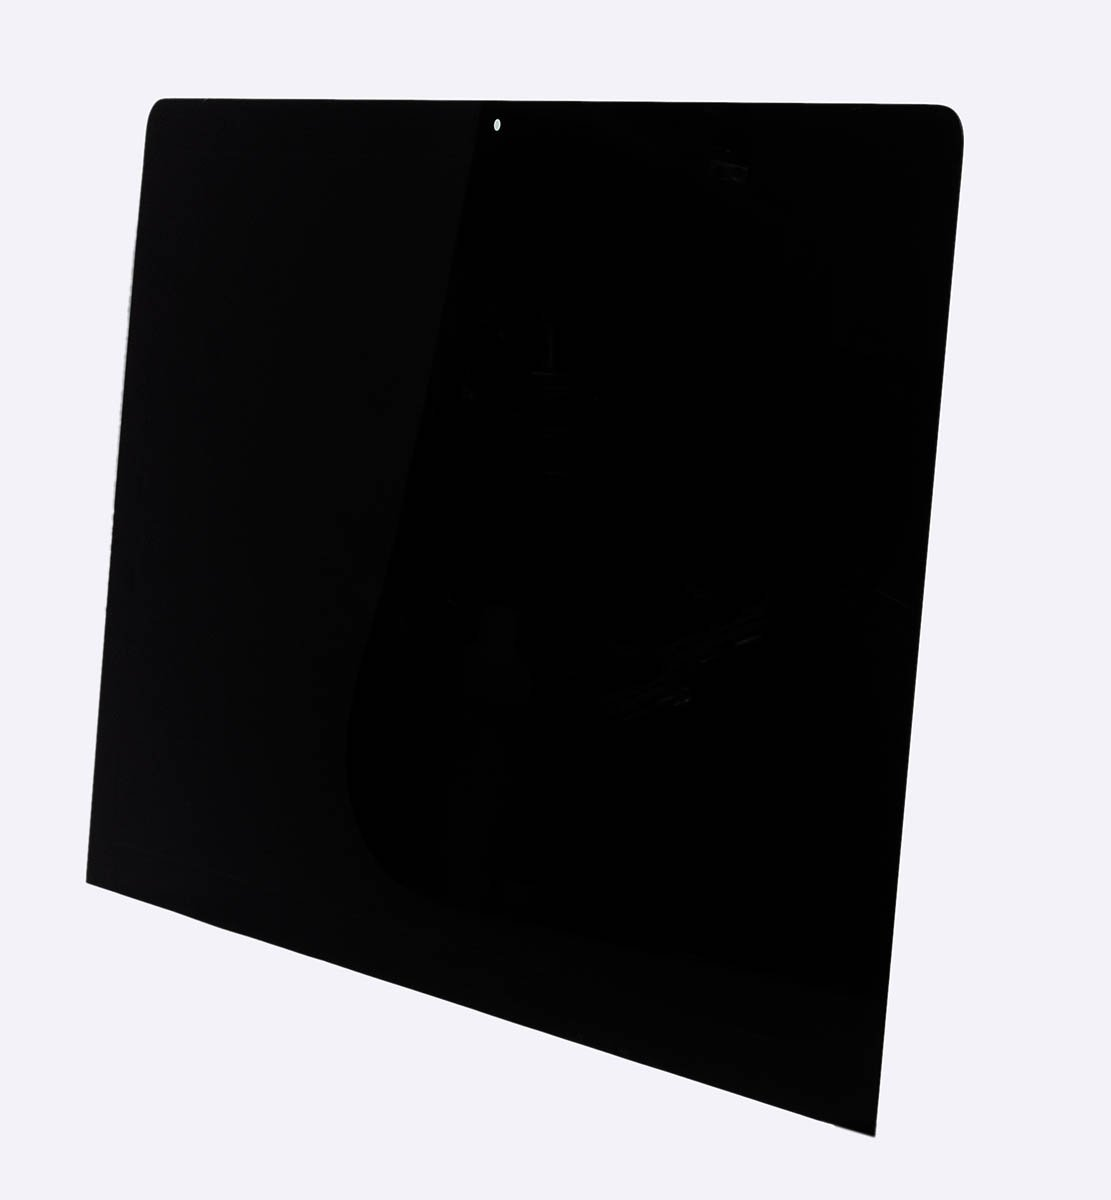 TechOrbits LCD Screen Assembly for Apple iMac 27'' A1419 Late 2015 661-03255 LM270QQ1-SDB1 5K IPS